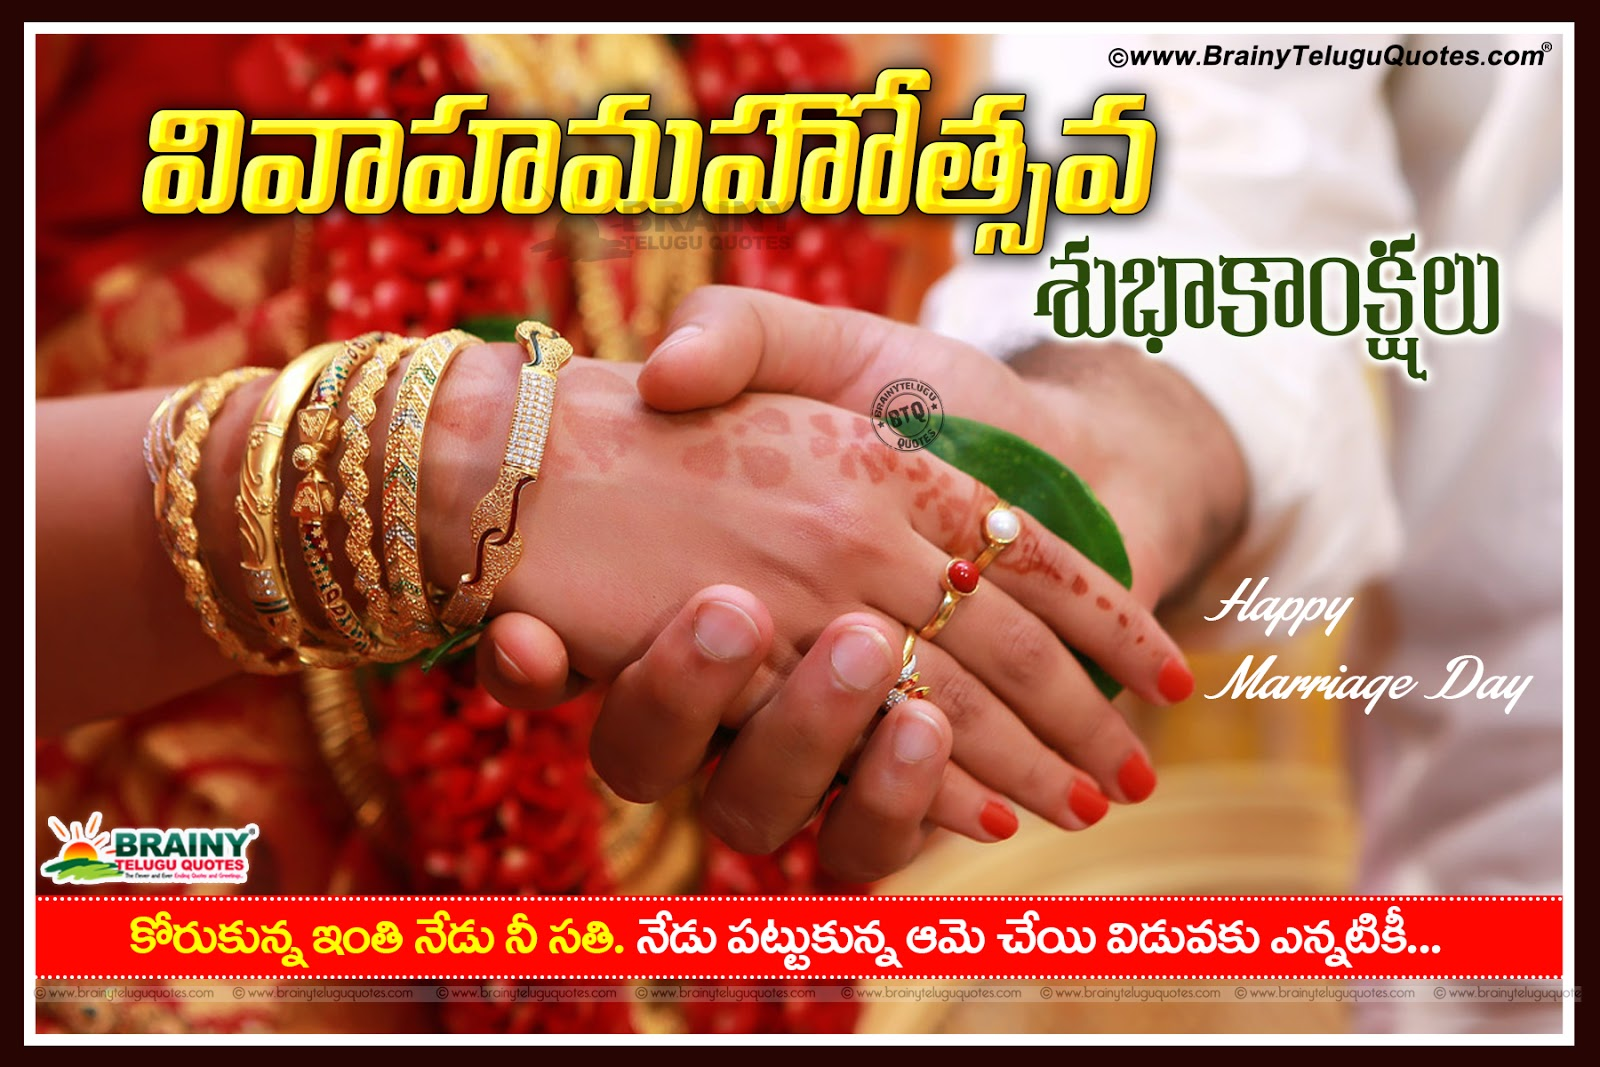 Best 4 Telugu Happy Marriage Day Greetings With Couple Hd Wallpapers Free Download Brainysms